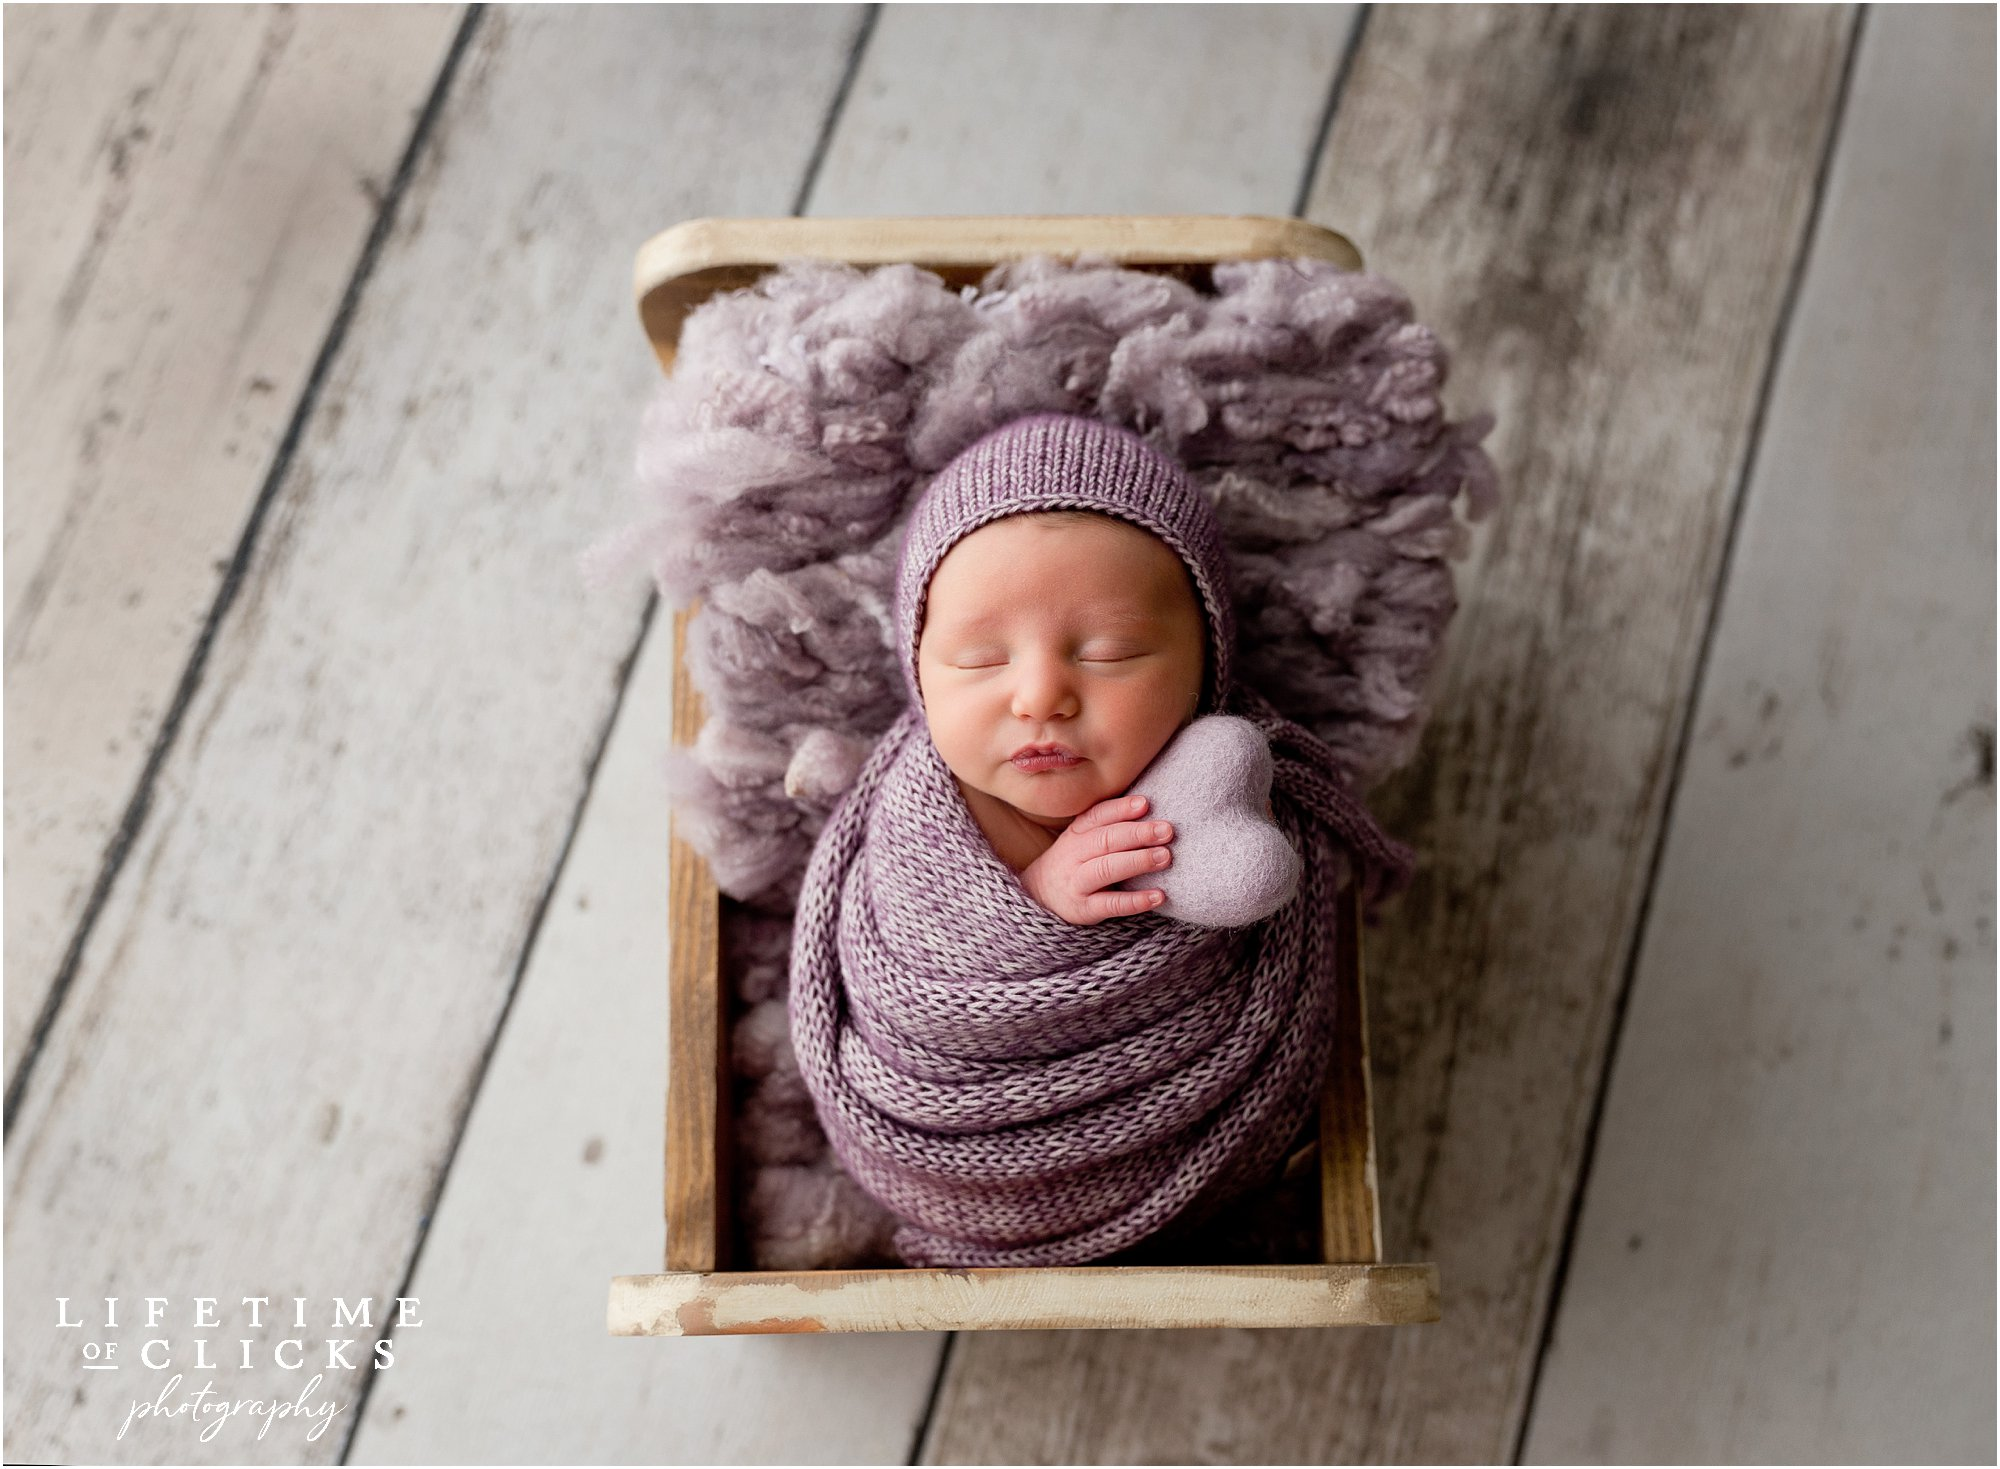 A True Miracle Baby Story by Lifetime of Clicks Photography